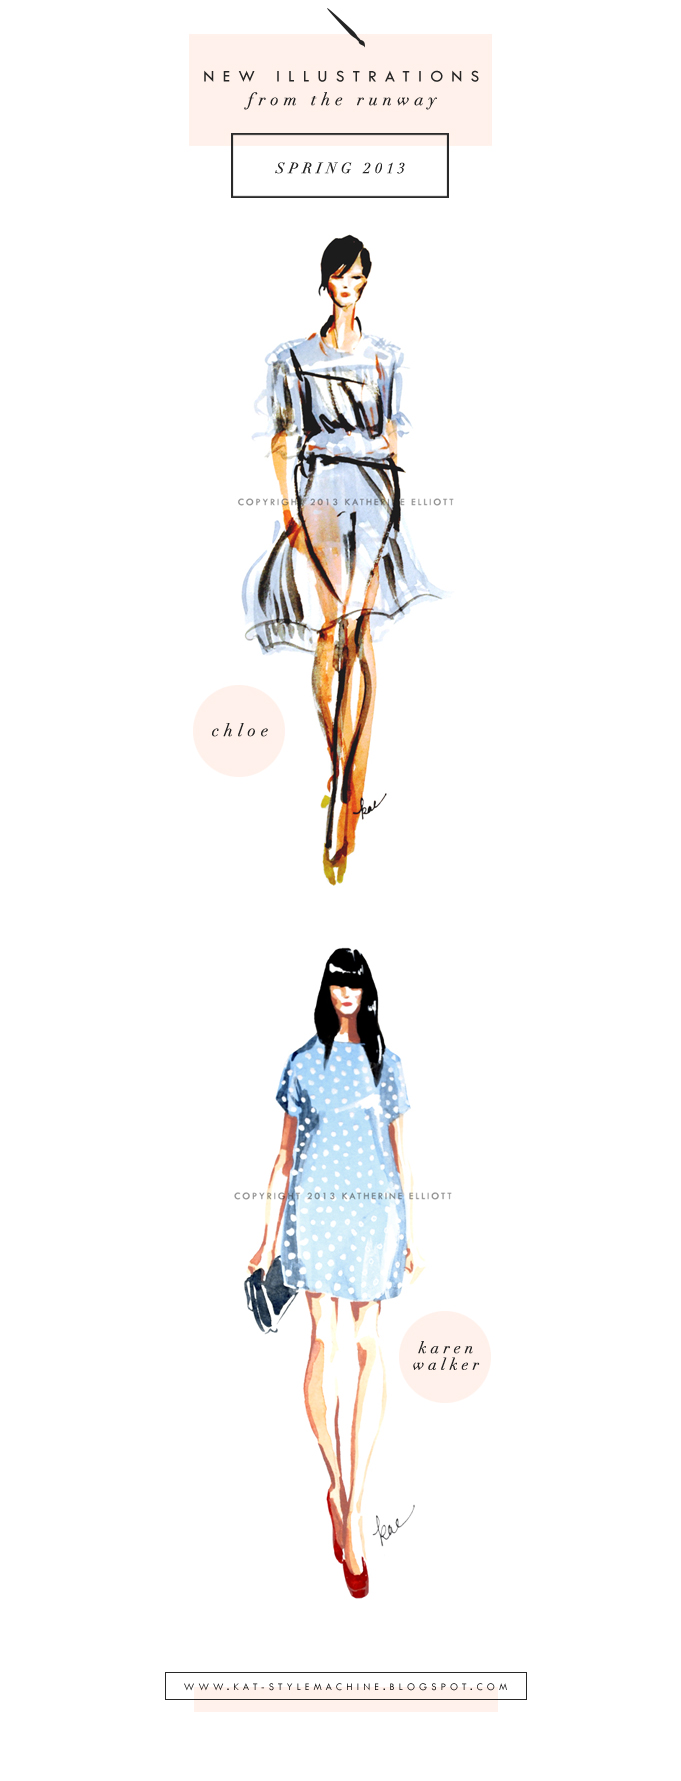 fashion illustration runway shows spring 2013 karen walker and chloe dresses